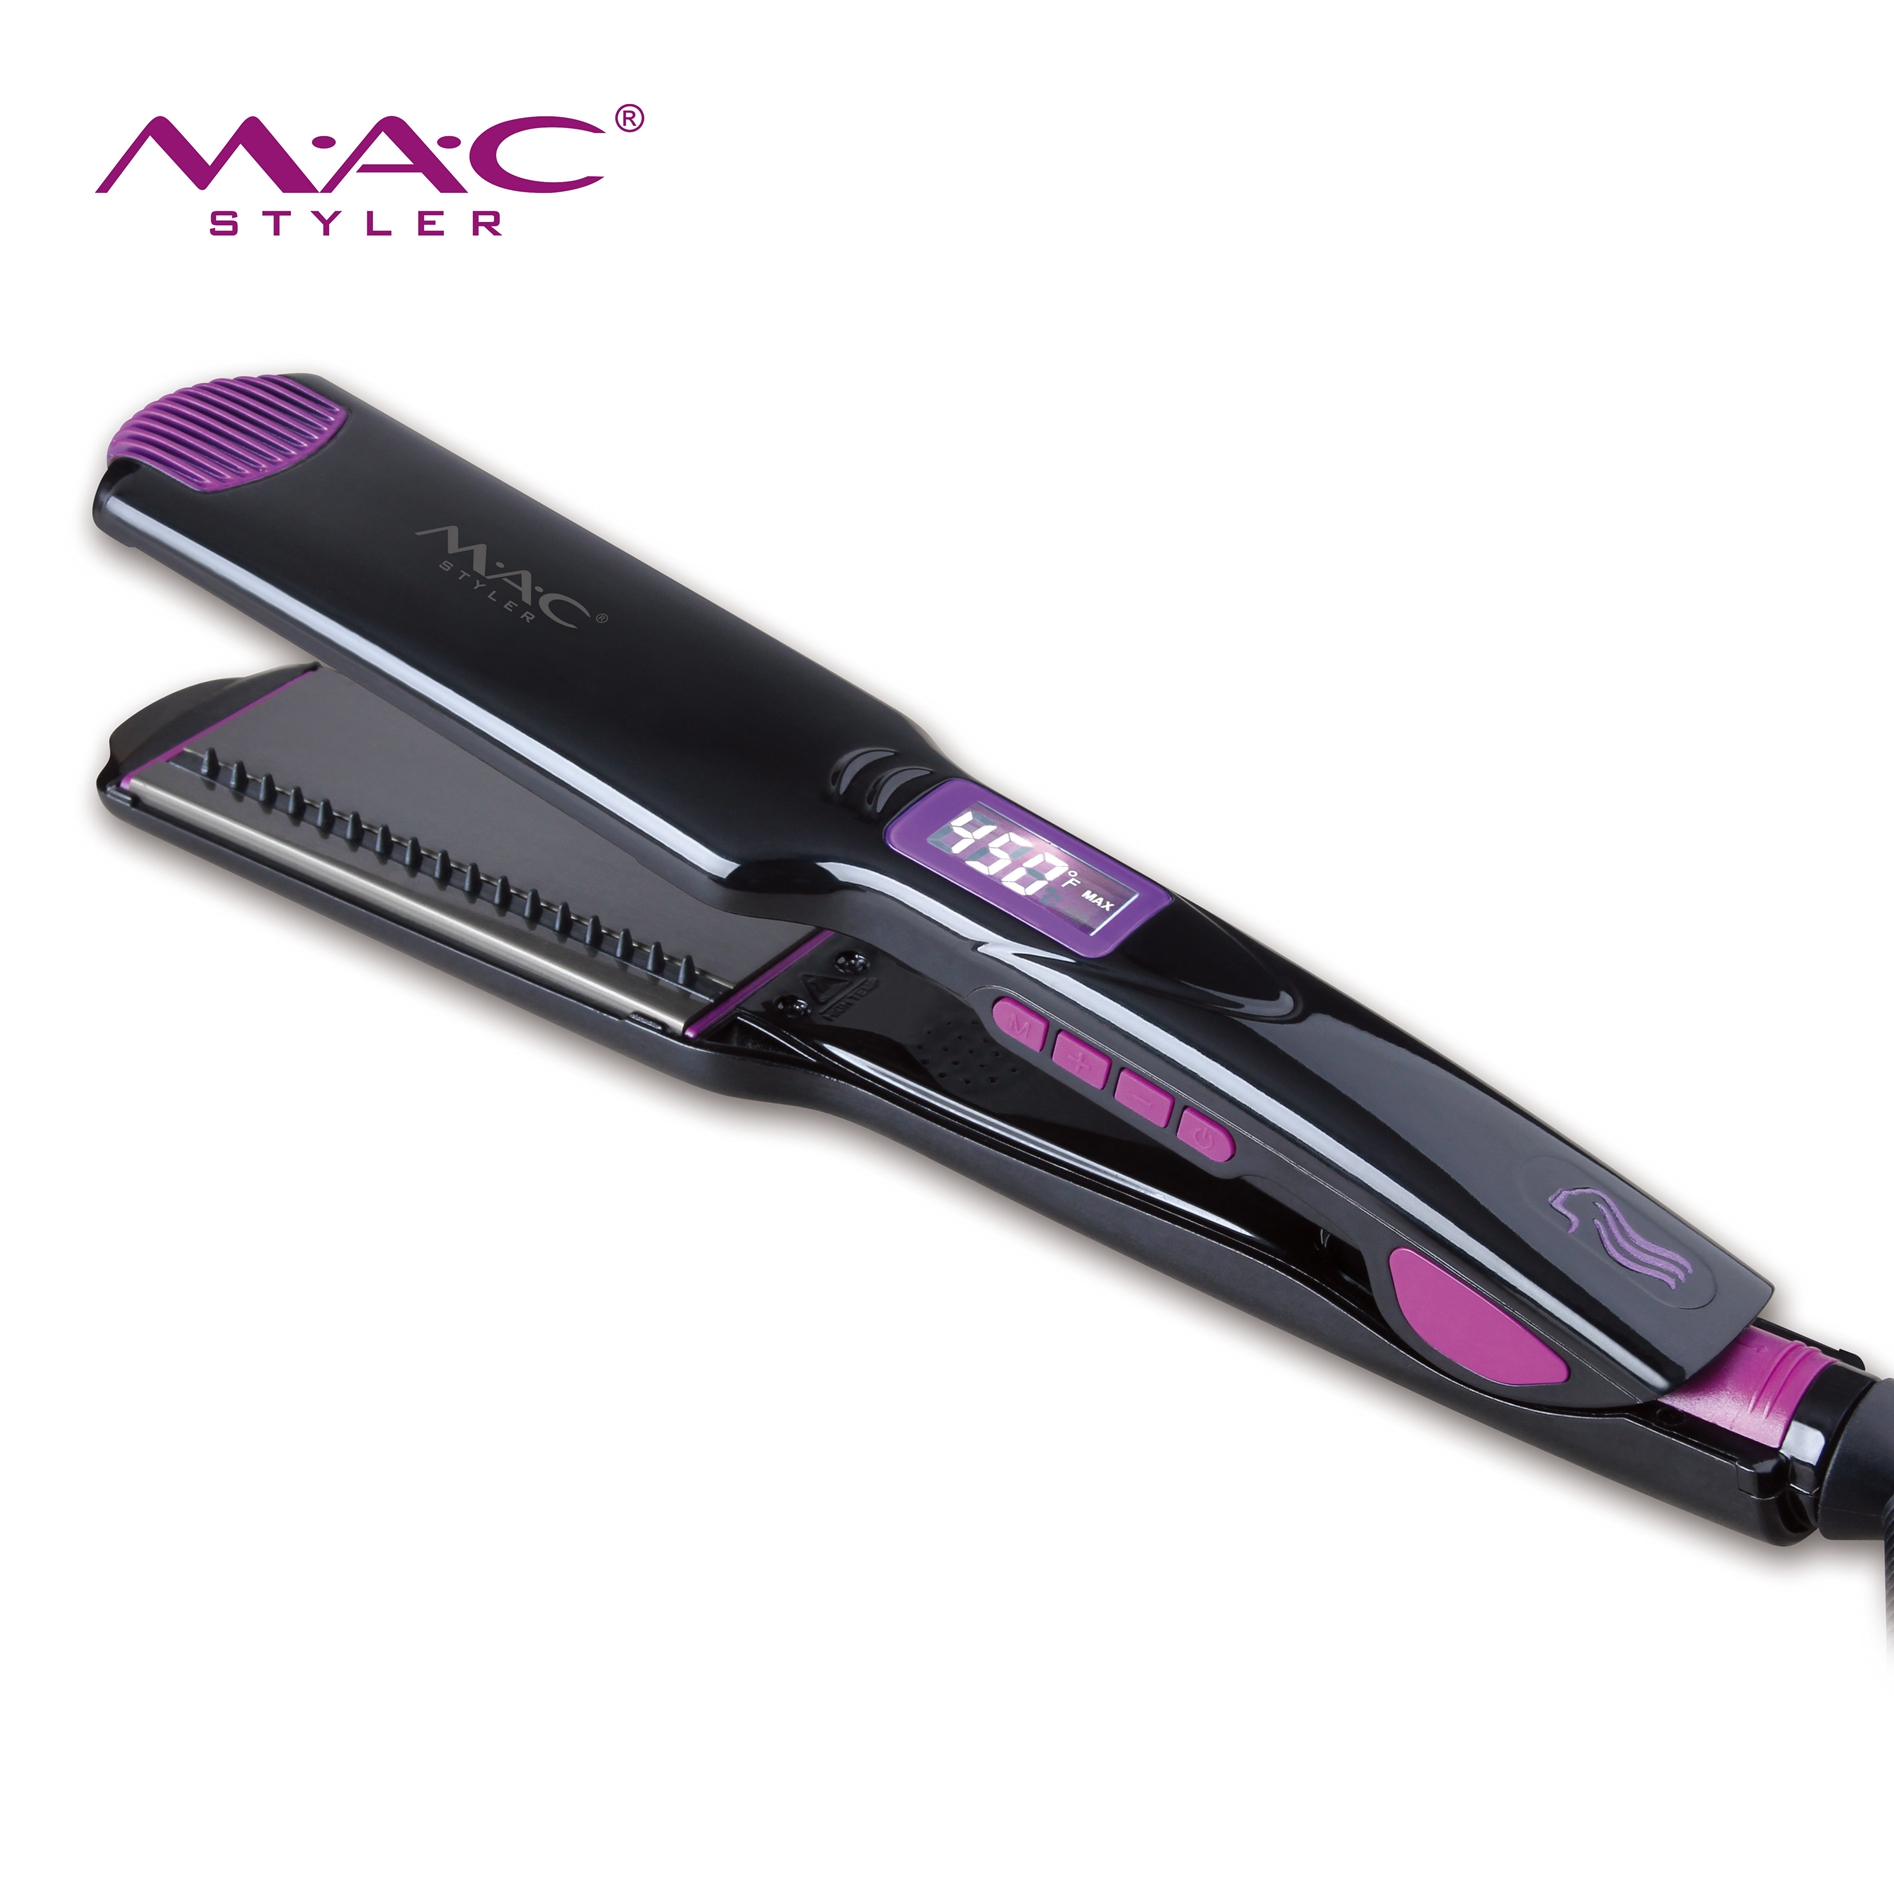 Professional Electric Salon Hair Straighteners 248-450F Titanium Plate Hair Straightener Comb